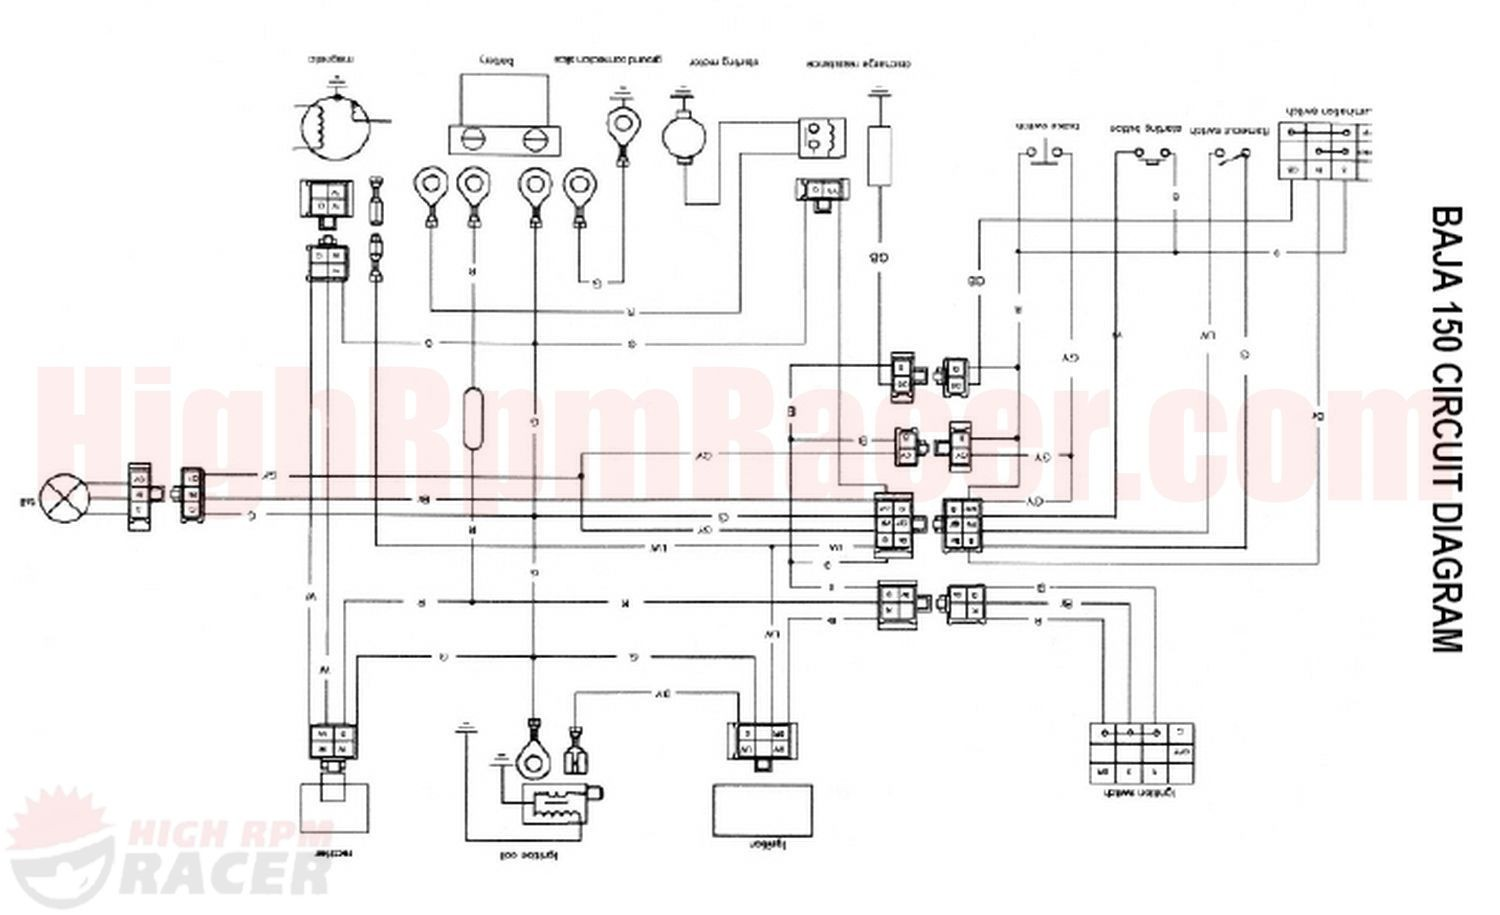 50cc atv wiring diagram wiring diagrams wireviper 50cc atv wiring diagram wiring library tao tao 50cc moped wiring diagram 50cc atv wiring diagram